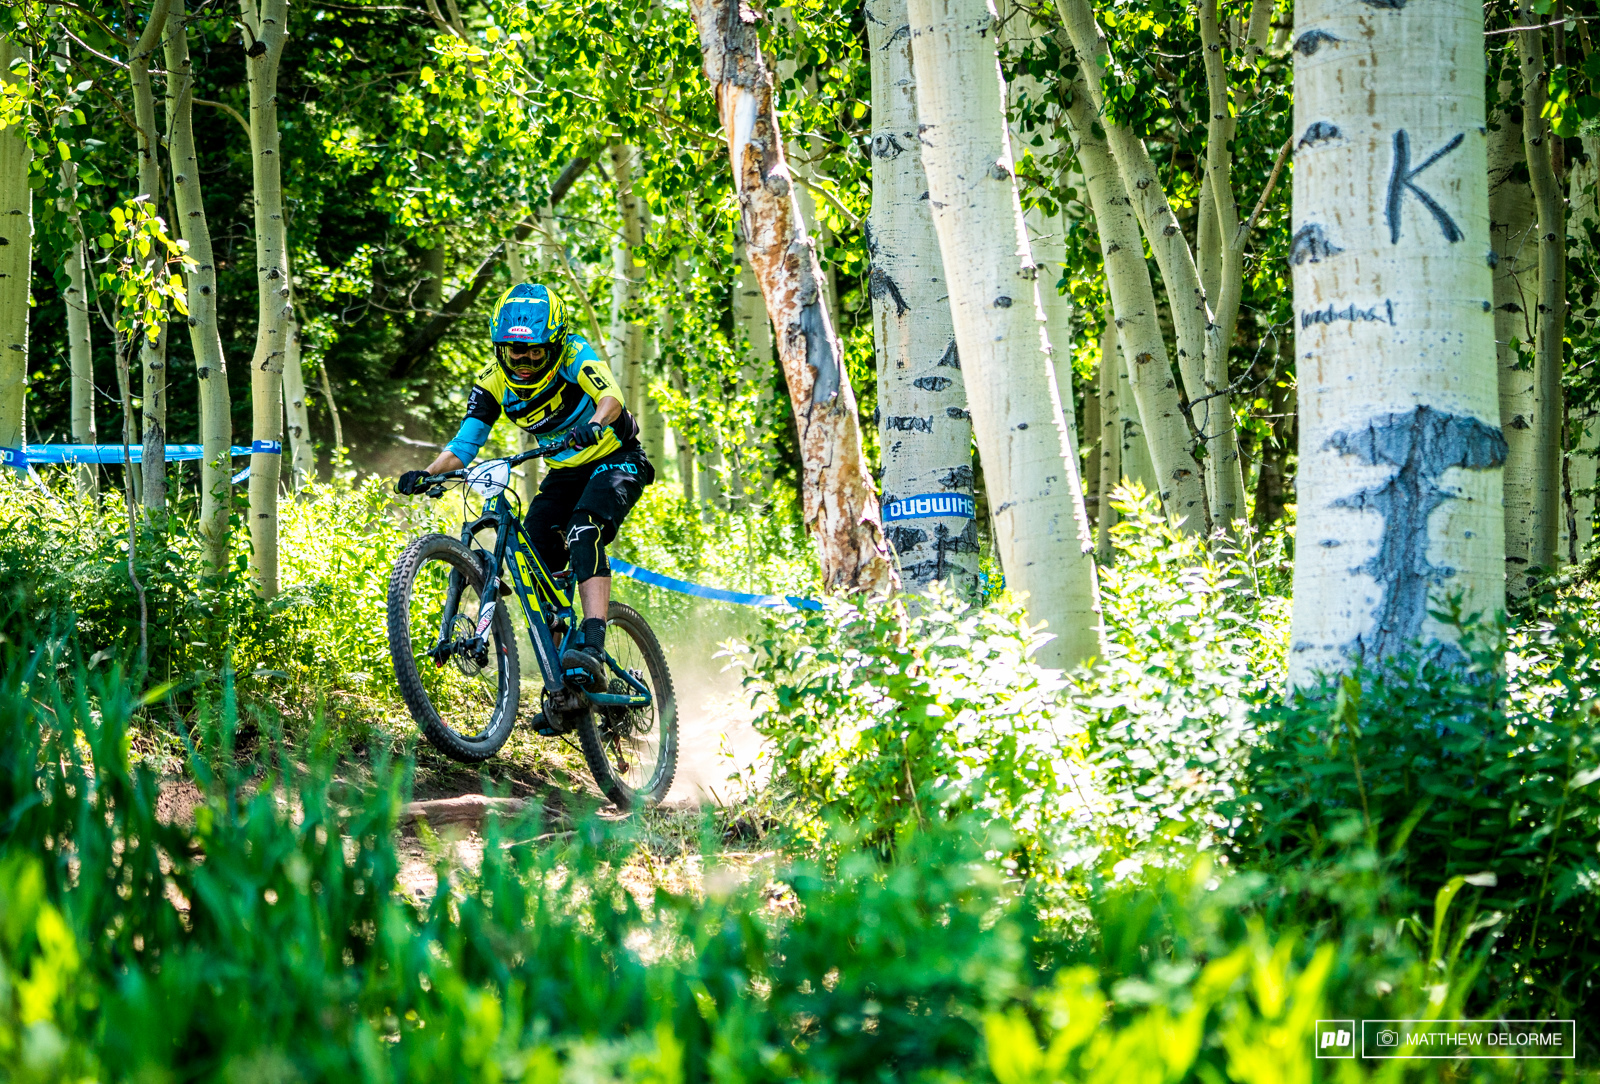 Anneke Beerten looks like like hasn t missed a beat. She was doing well in Colorado last time the EWS was here will she return with a win